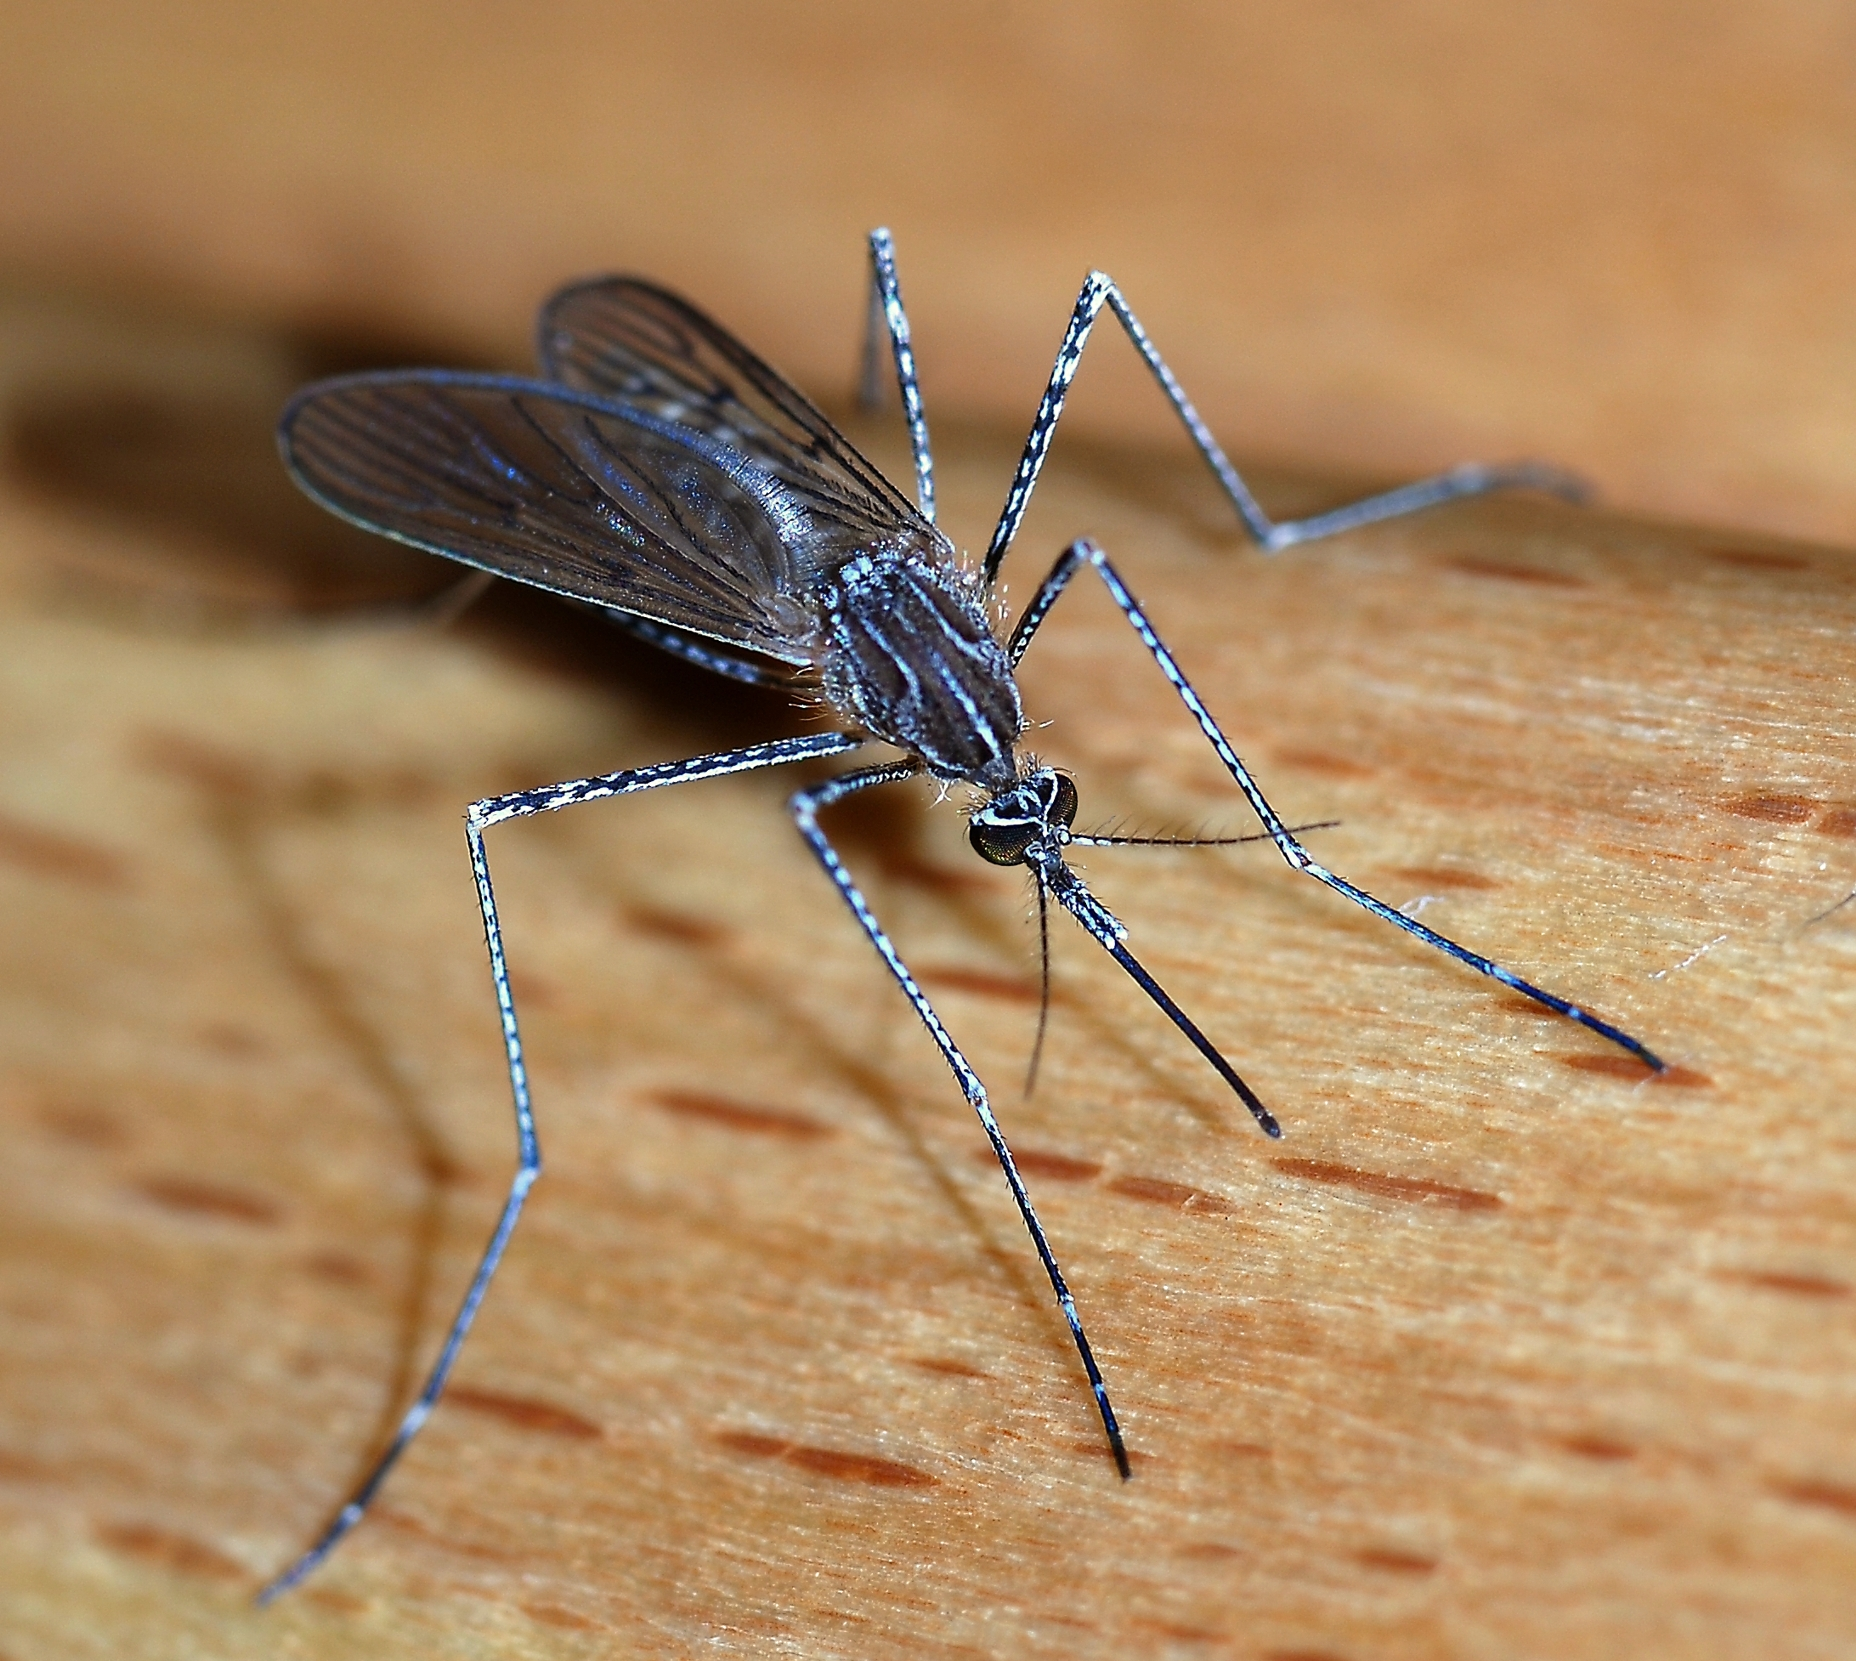 my previous post due to new information about the war on mosquitoes